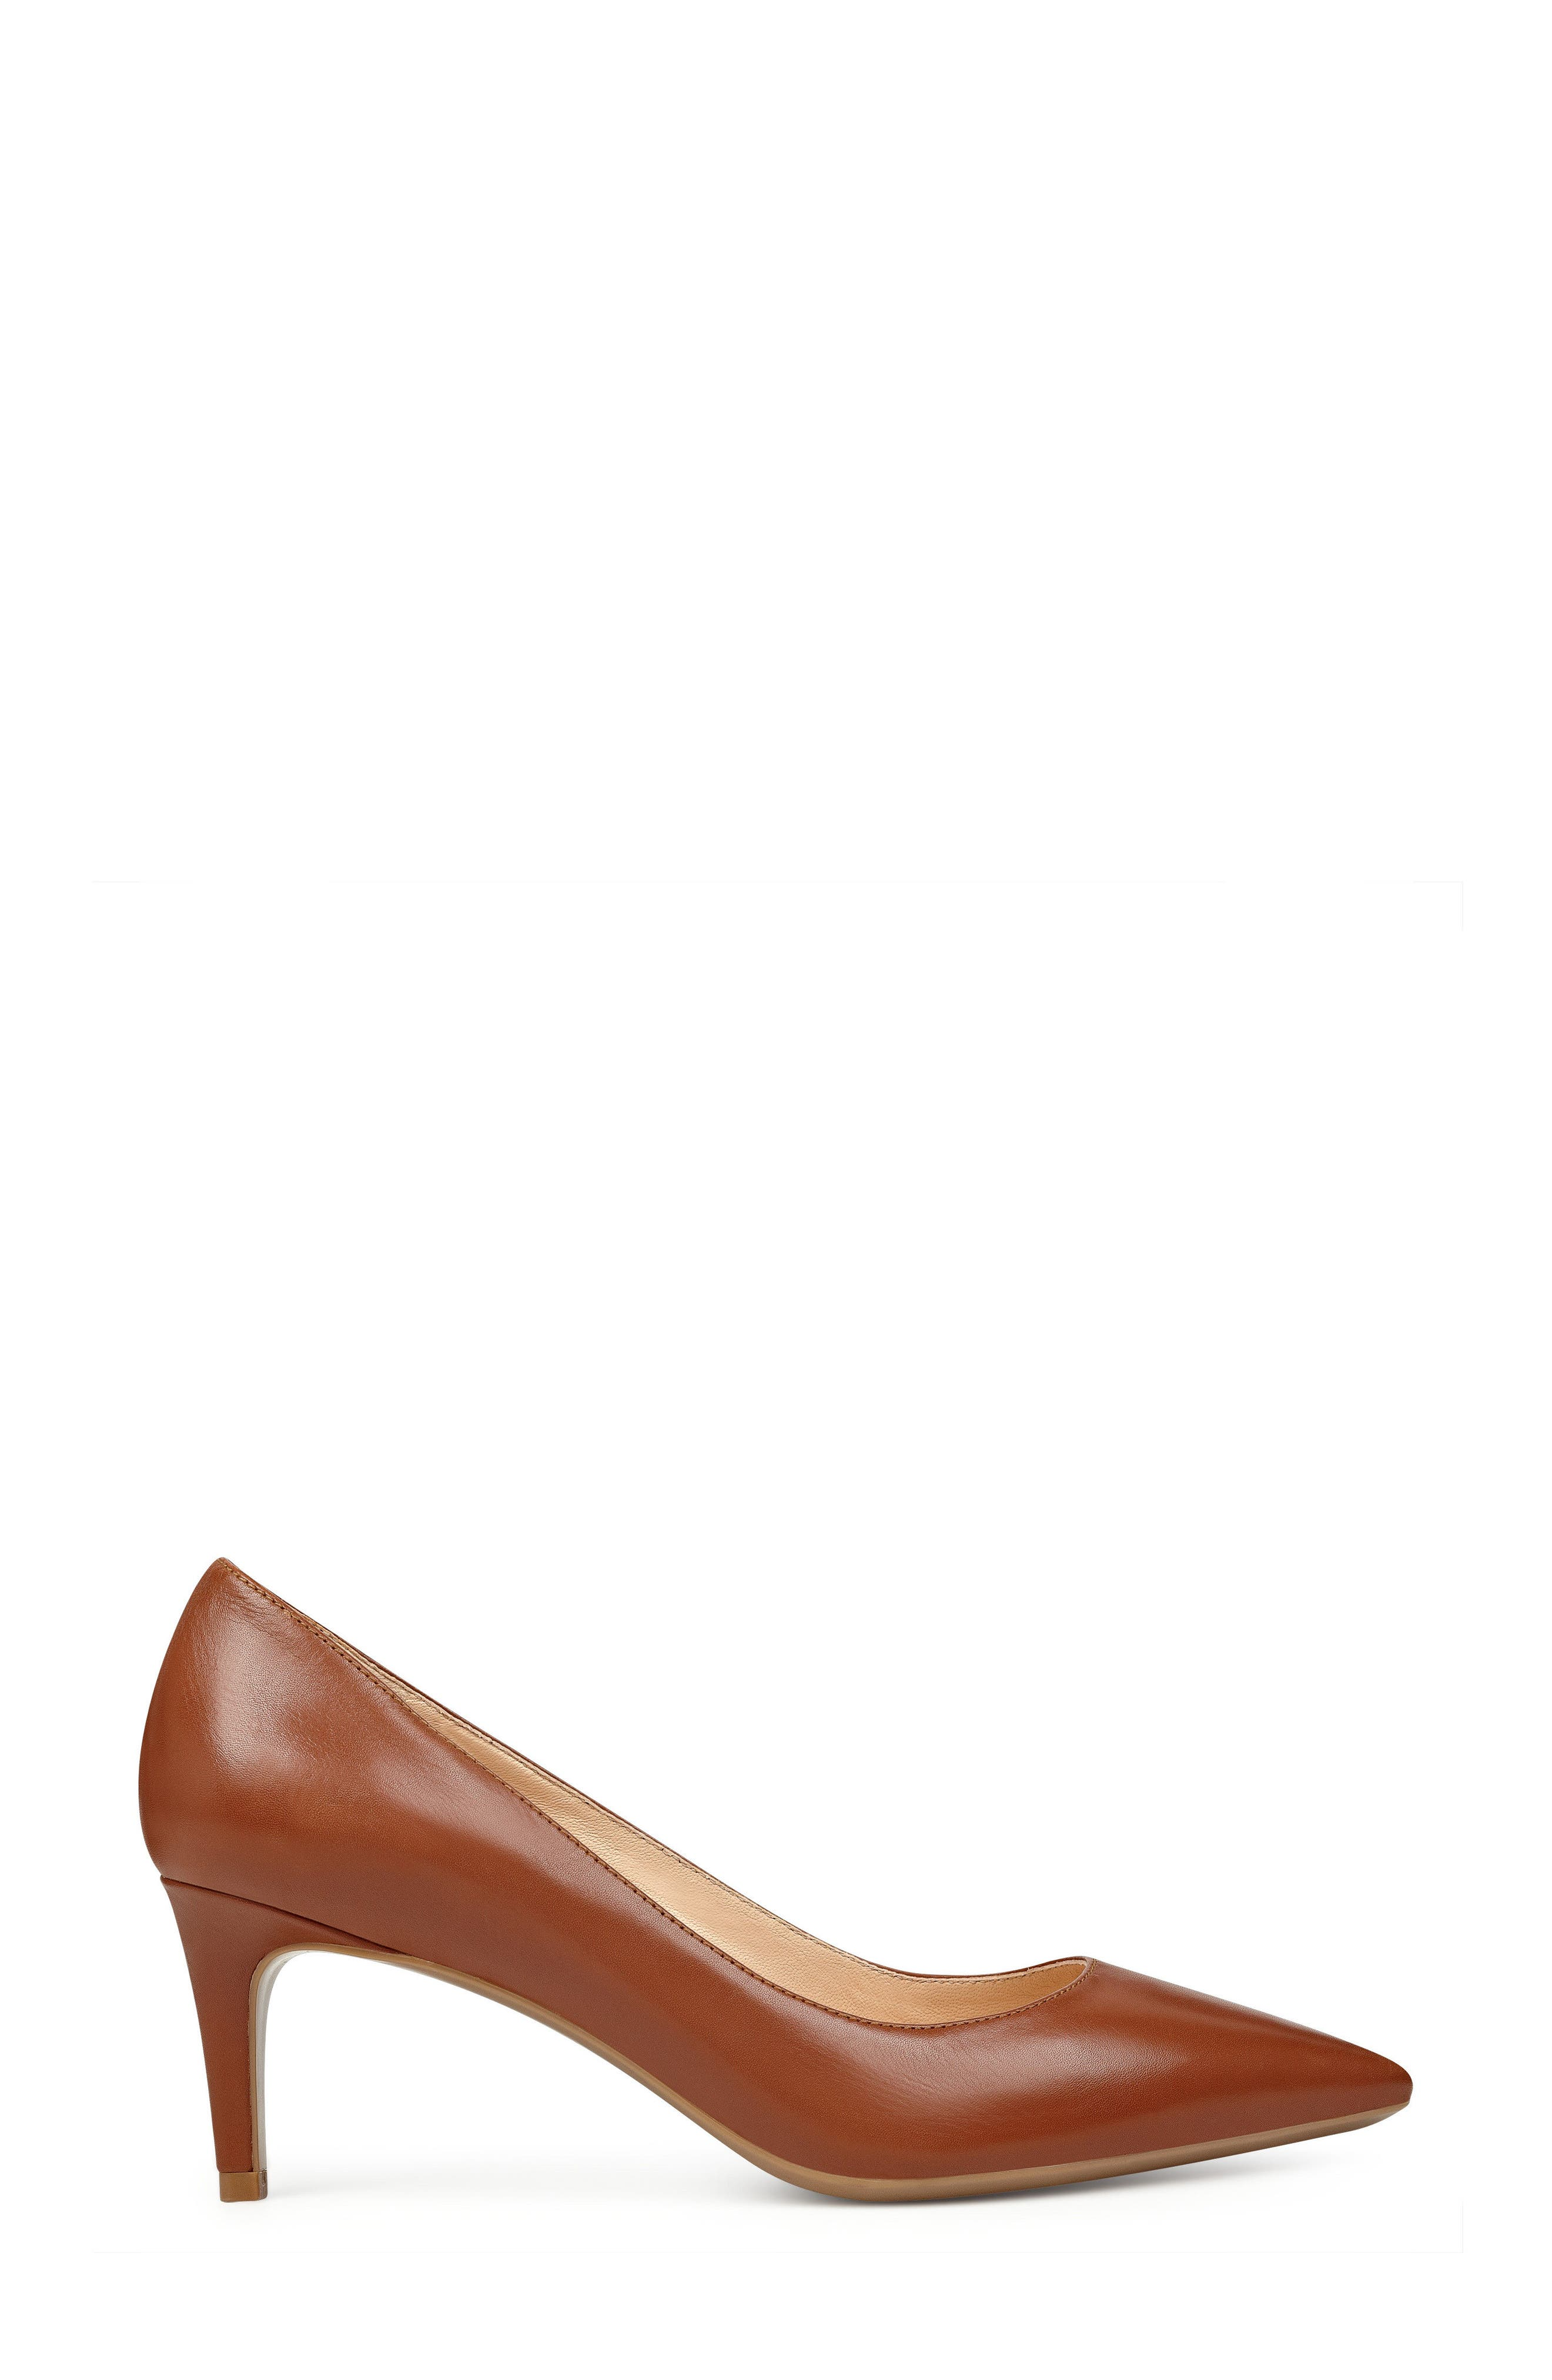 Soho Pointy Toe Pump,                             Alternate thumbnail 26, color,